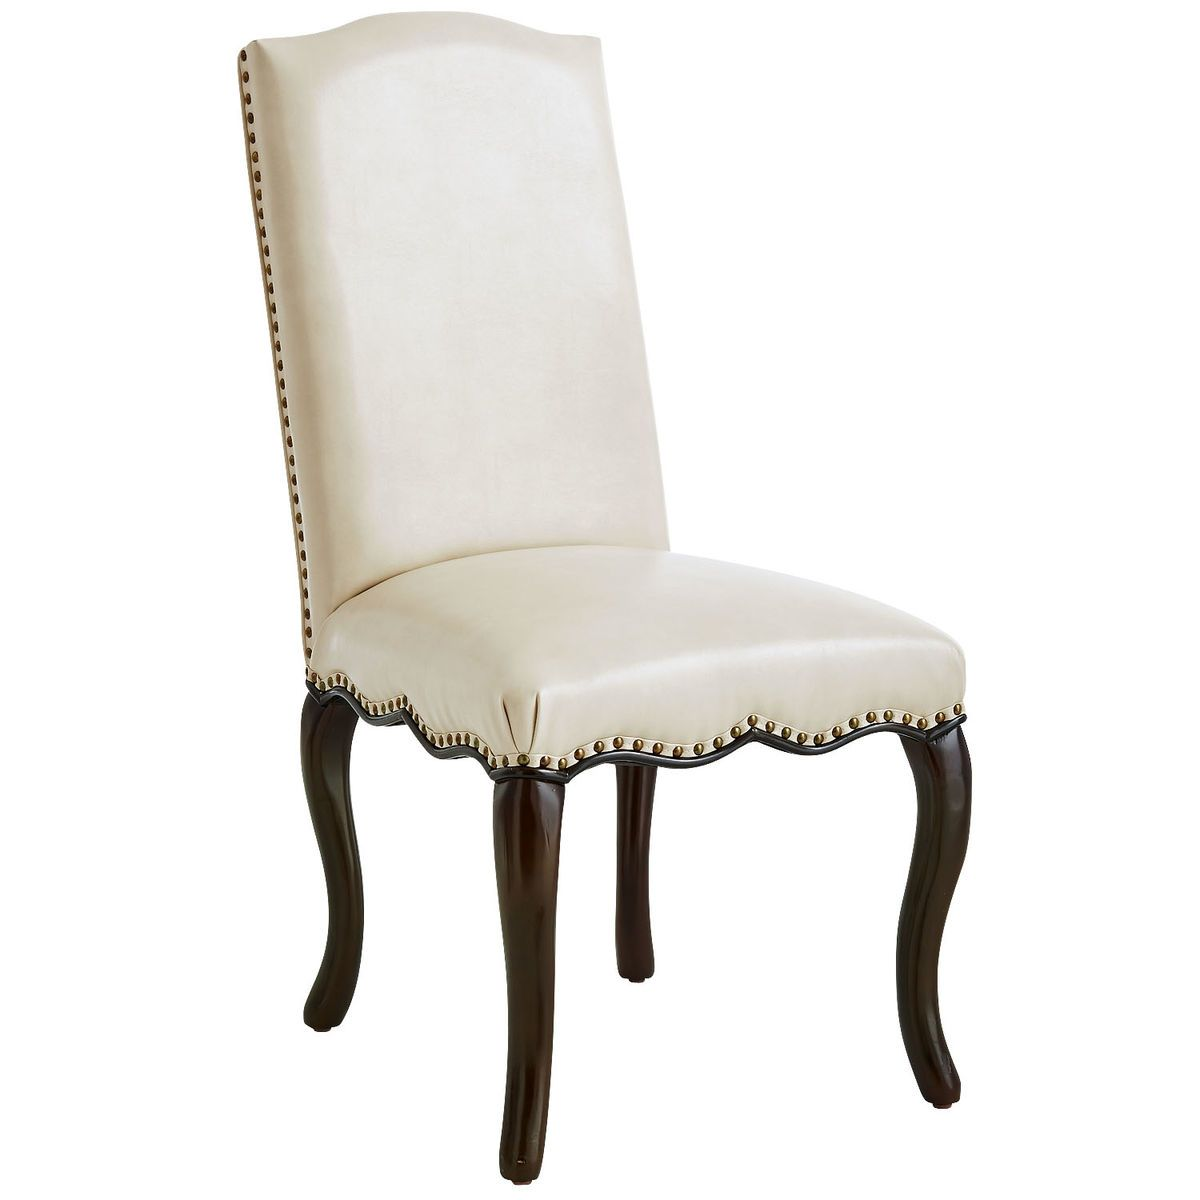 Claudine Ivory Dining Chair  Ivory Classic Elegance And Nailhead New Ivory Dining Room Set Decorating Inspiration